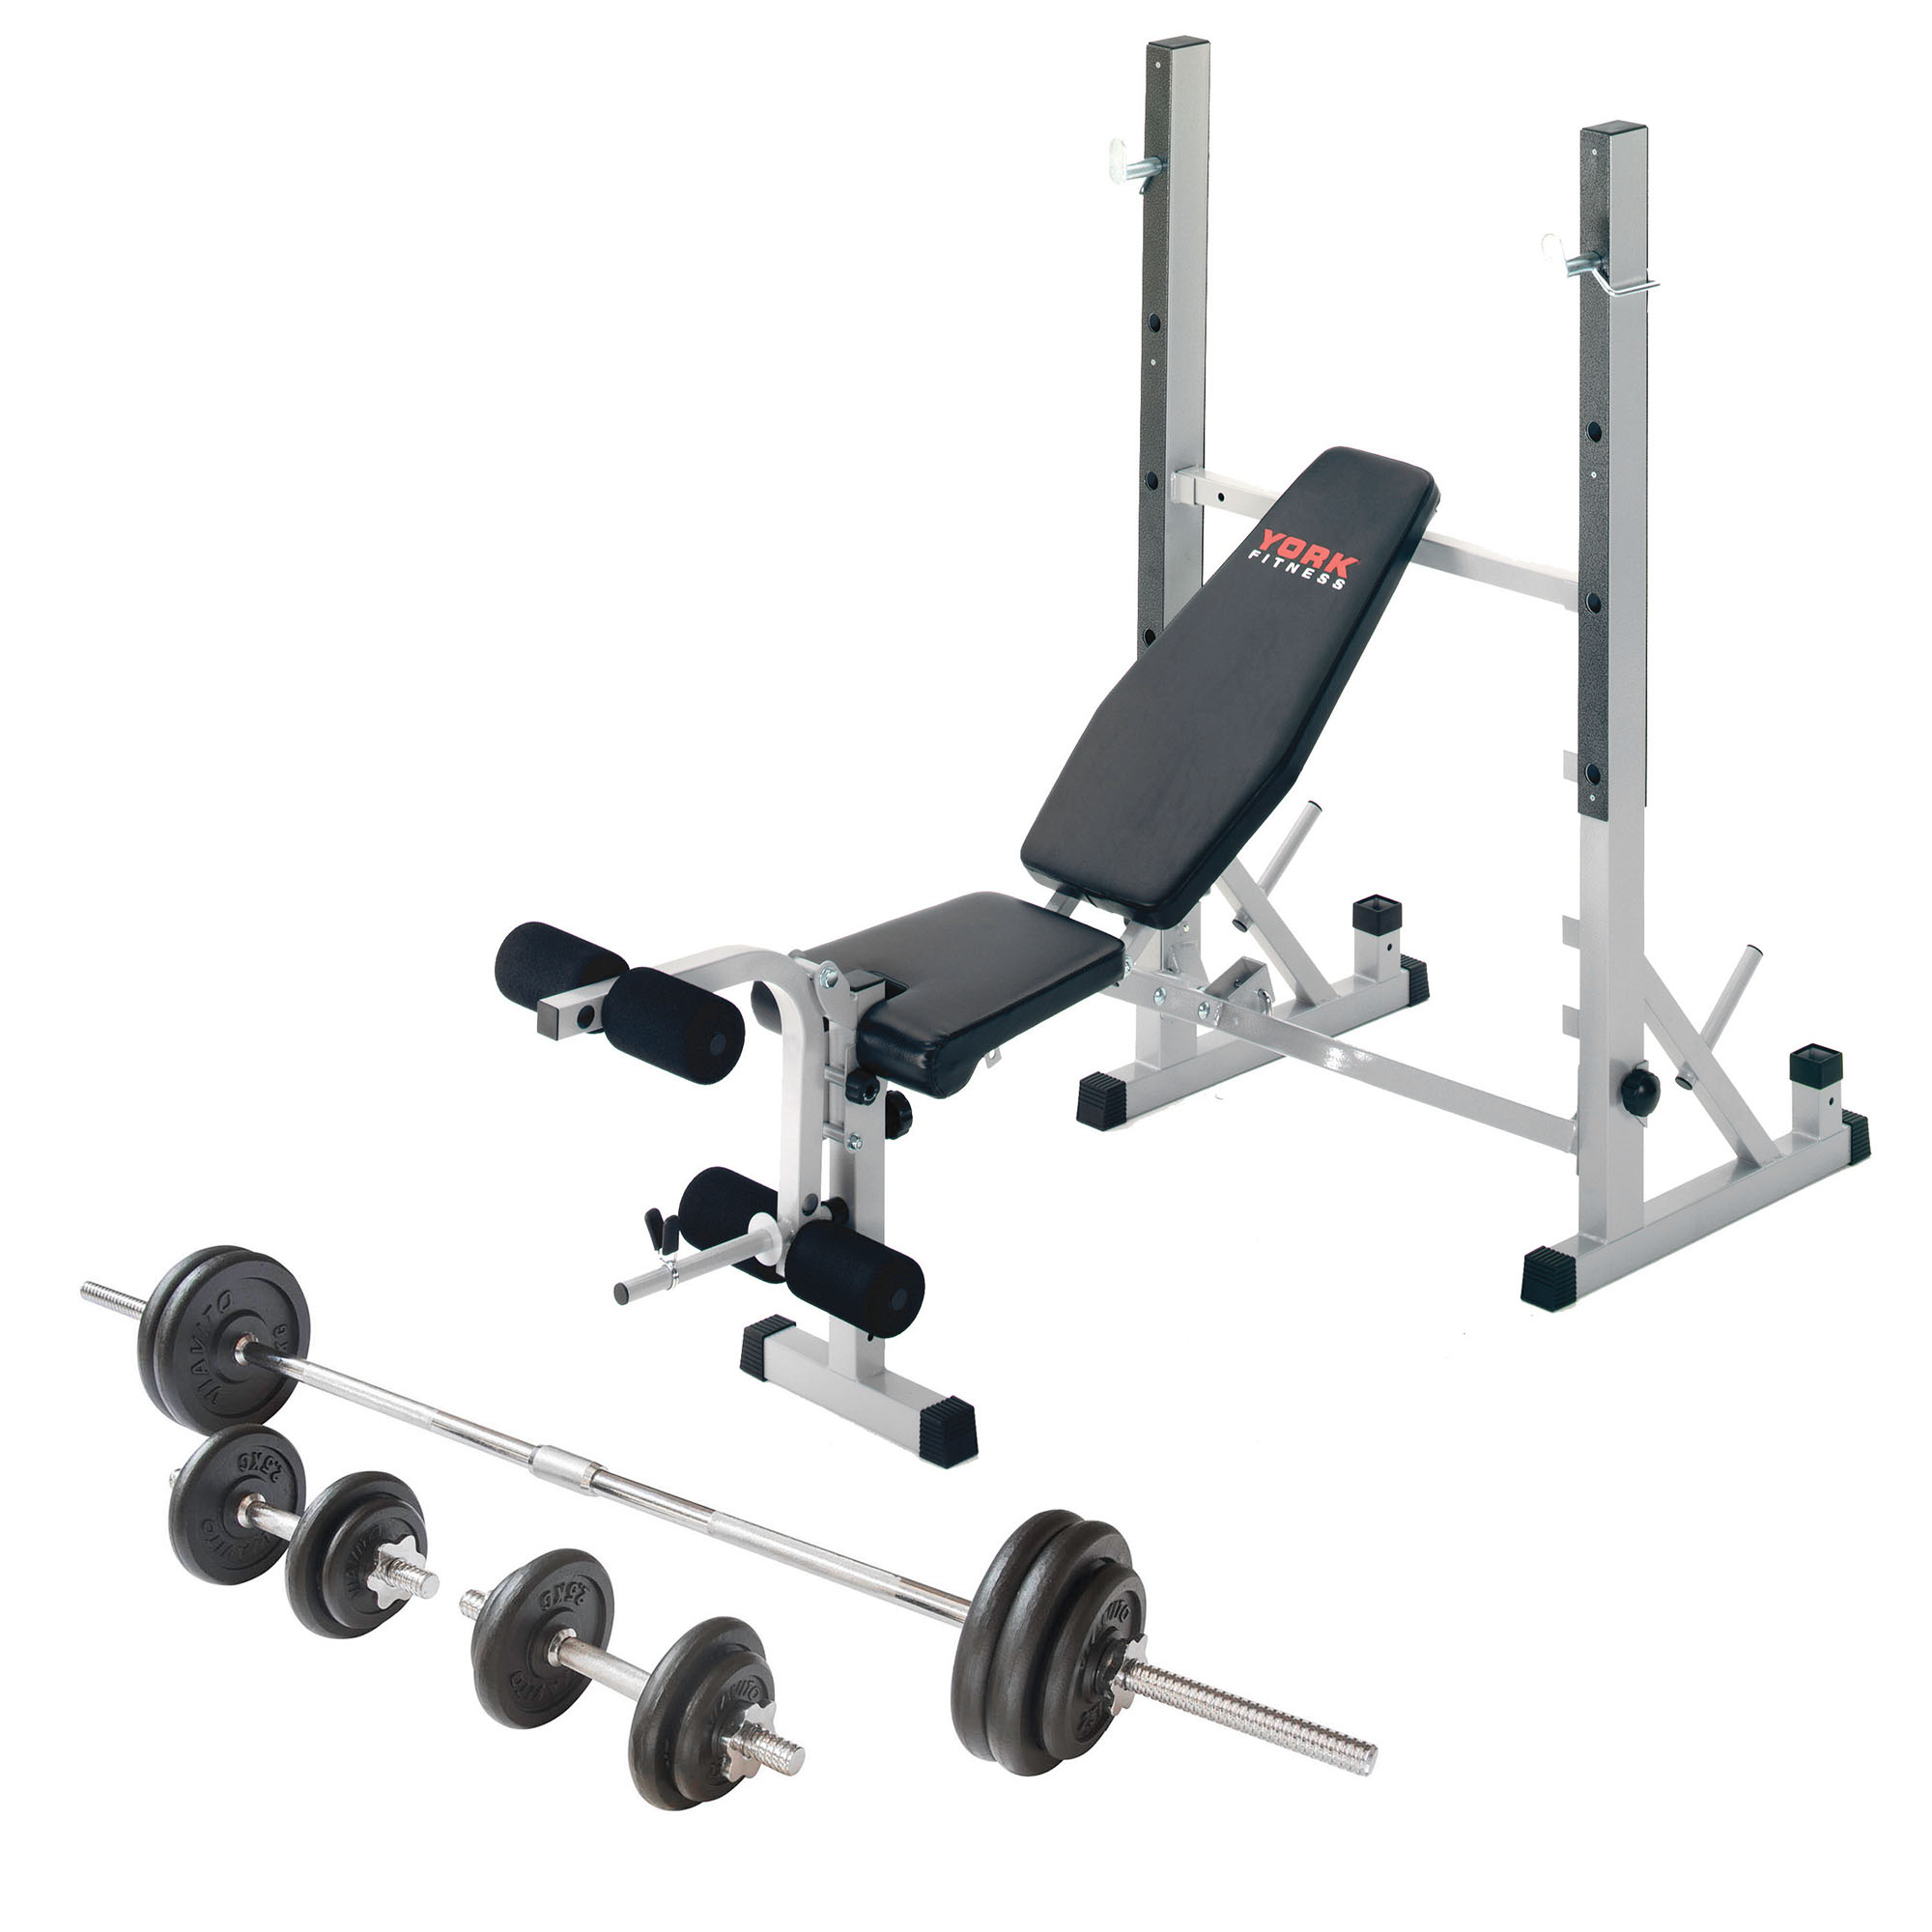 workout with bench gym body training home ebay set seat itm fitness adjustable lifting olympic weight